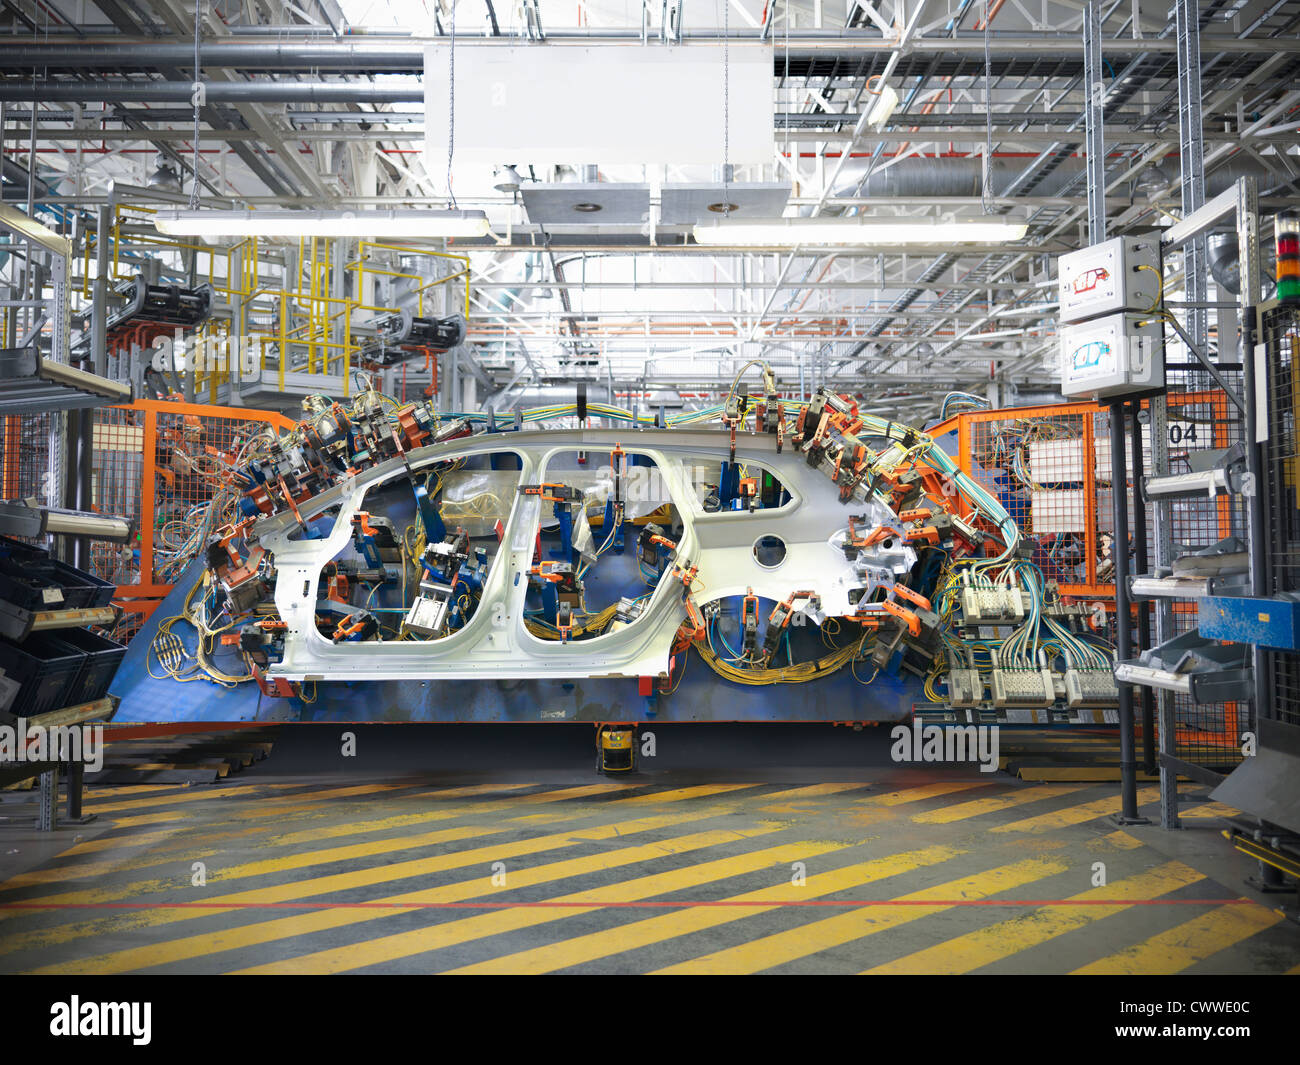 Car body part in welding jig in car factory - Stock Image